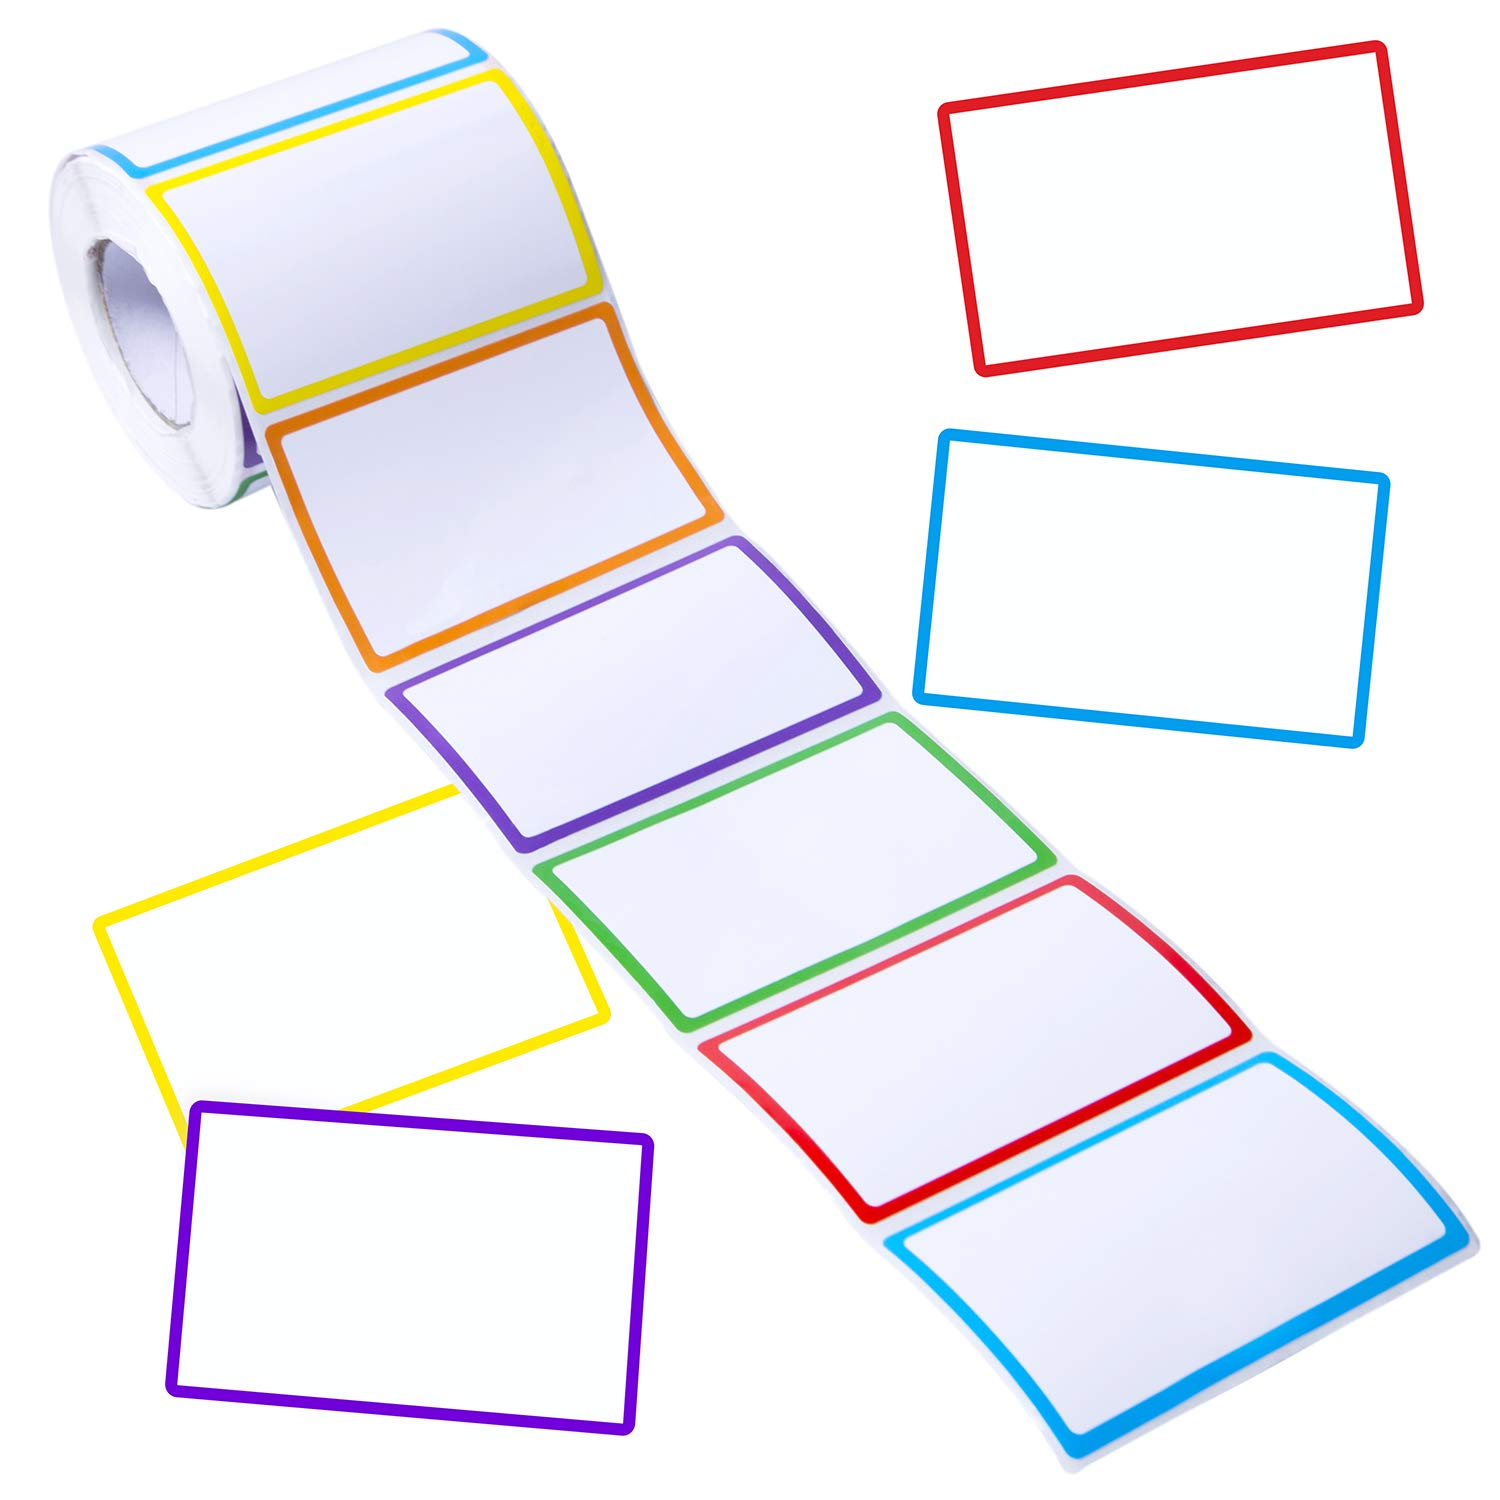 400pcs Colorful Border Name Tag Labels Adhesive Name Label Stickers Plain Name Tag Stickers for School, Parties, Kids Clothes, Jars, Bottles